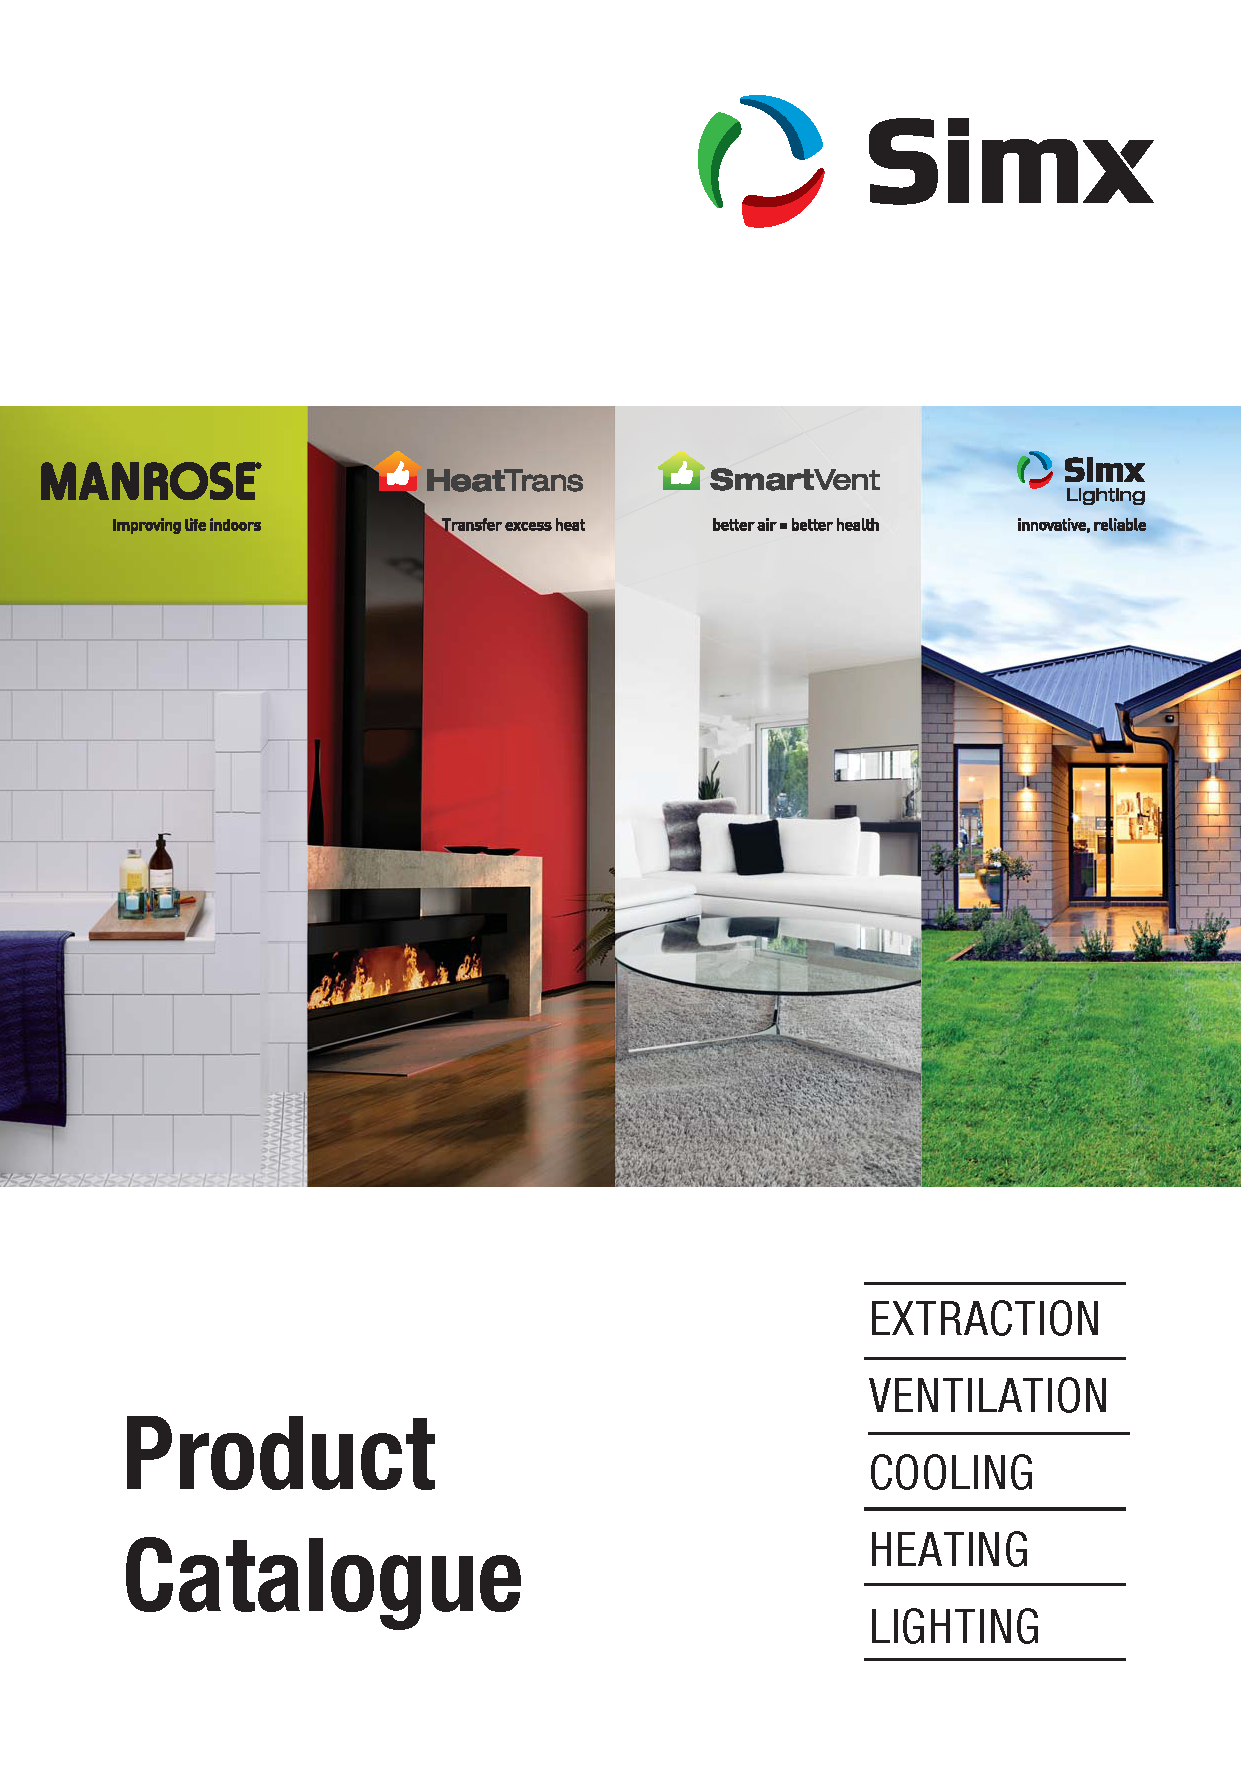 Simx Product Catalogue